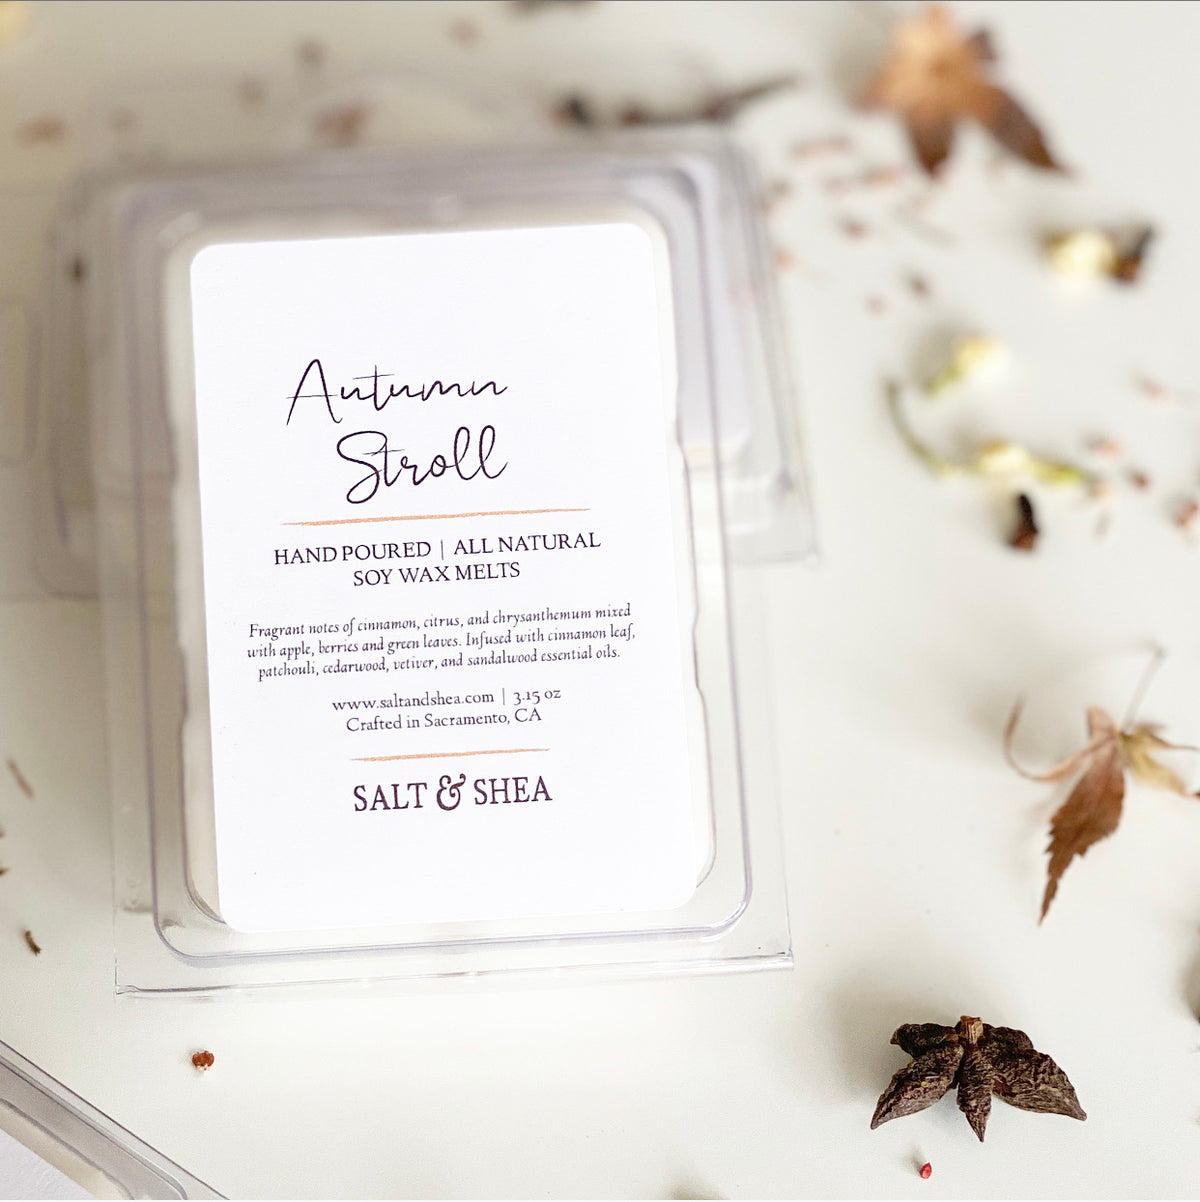 Autumn Stroll Soy Wax Melts